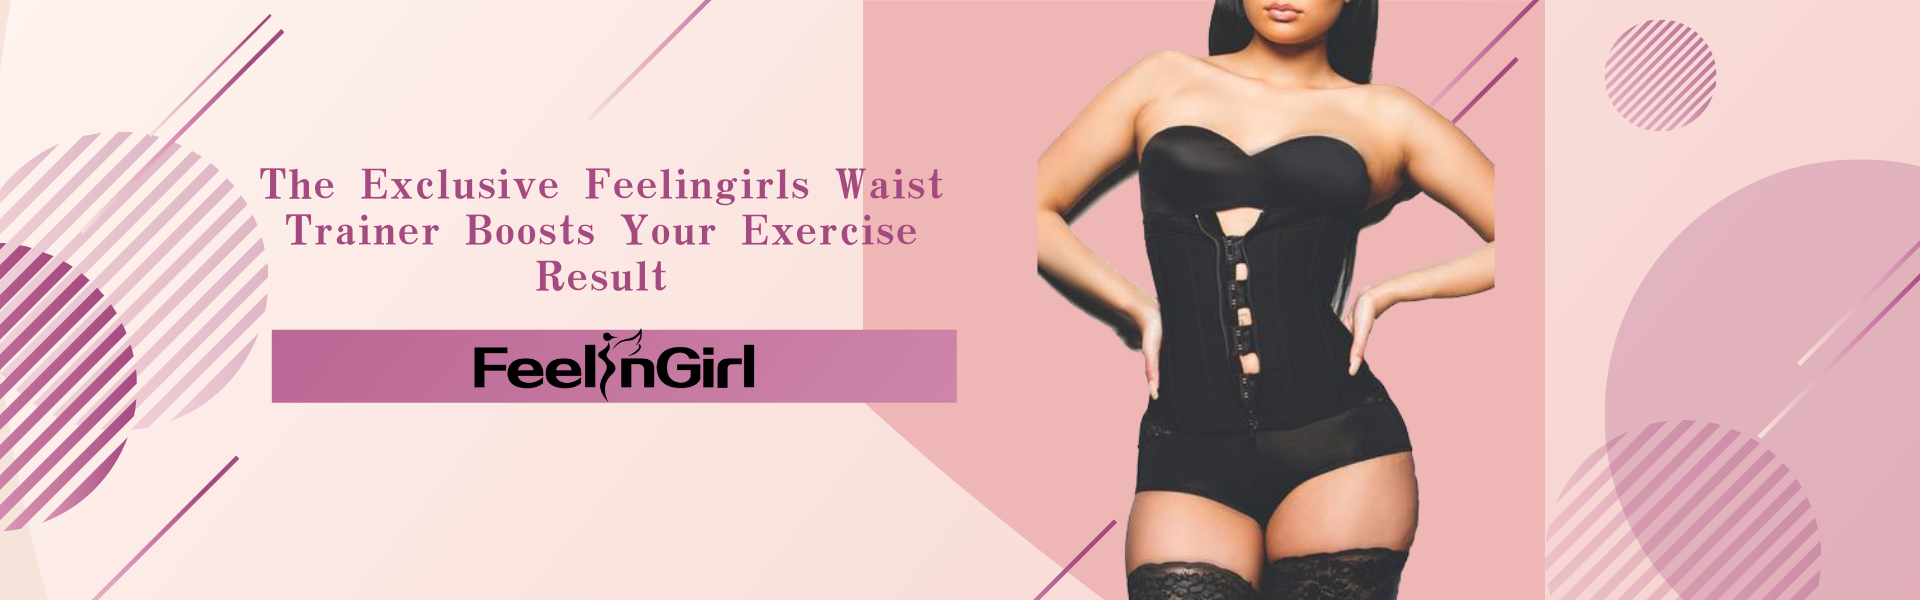 The Exclusive Feelingirls Waist Trainer Boosts Your Exercise Result